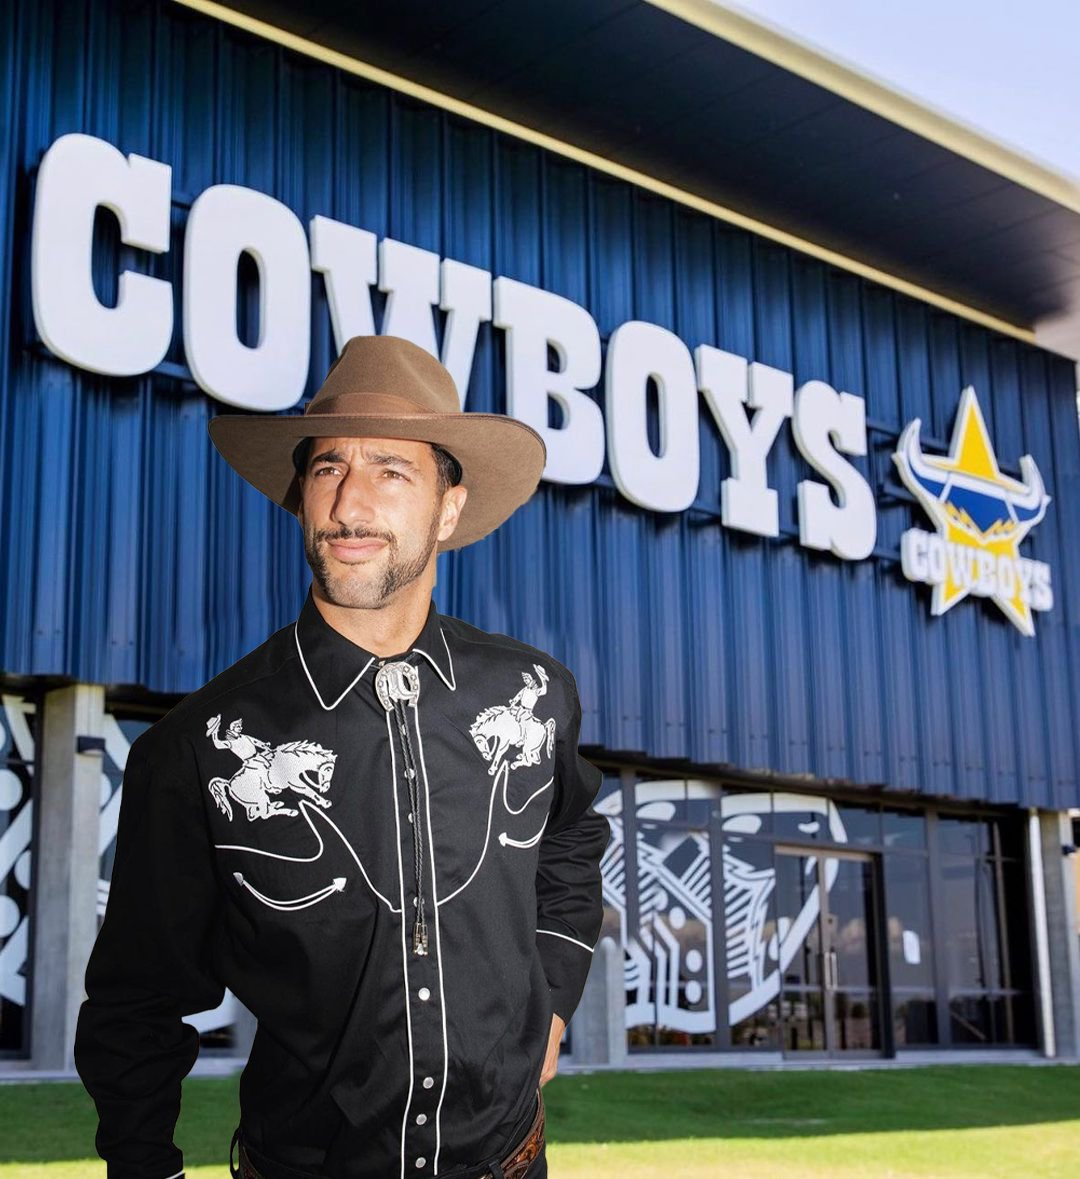 Can he play in the front row???? #ridemcowboys